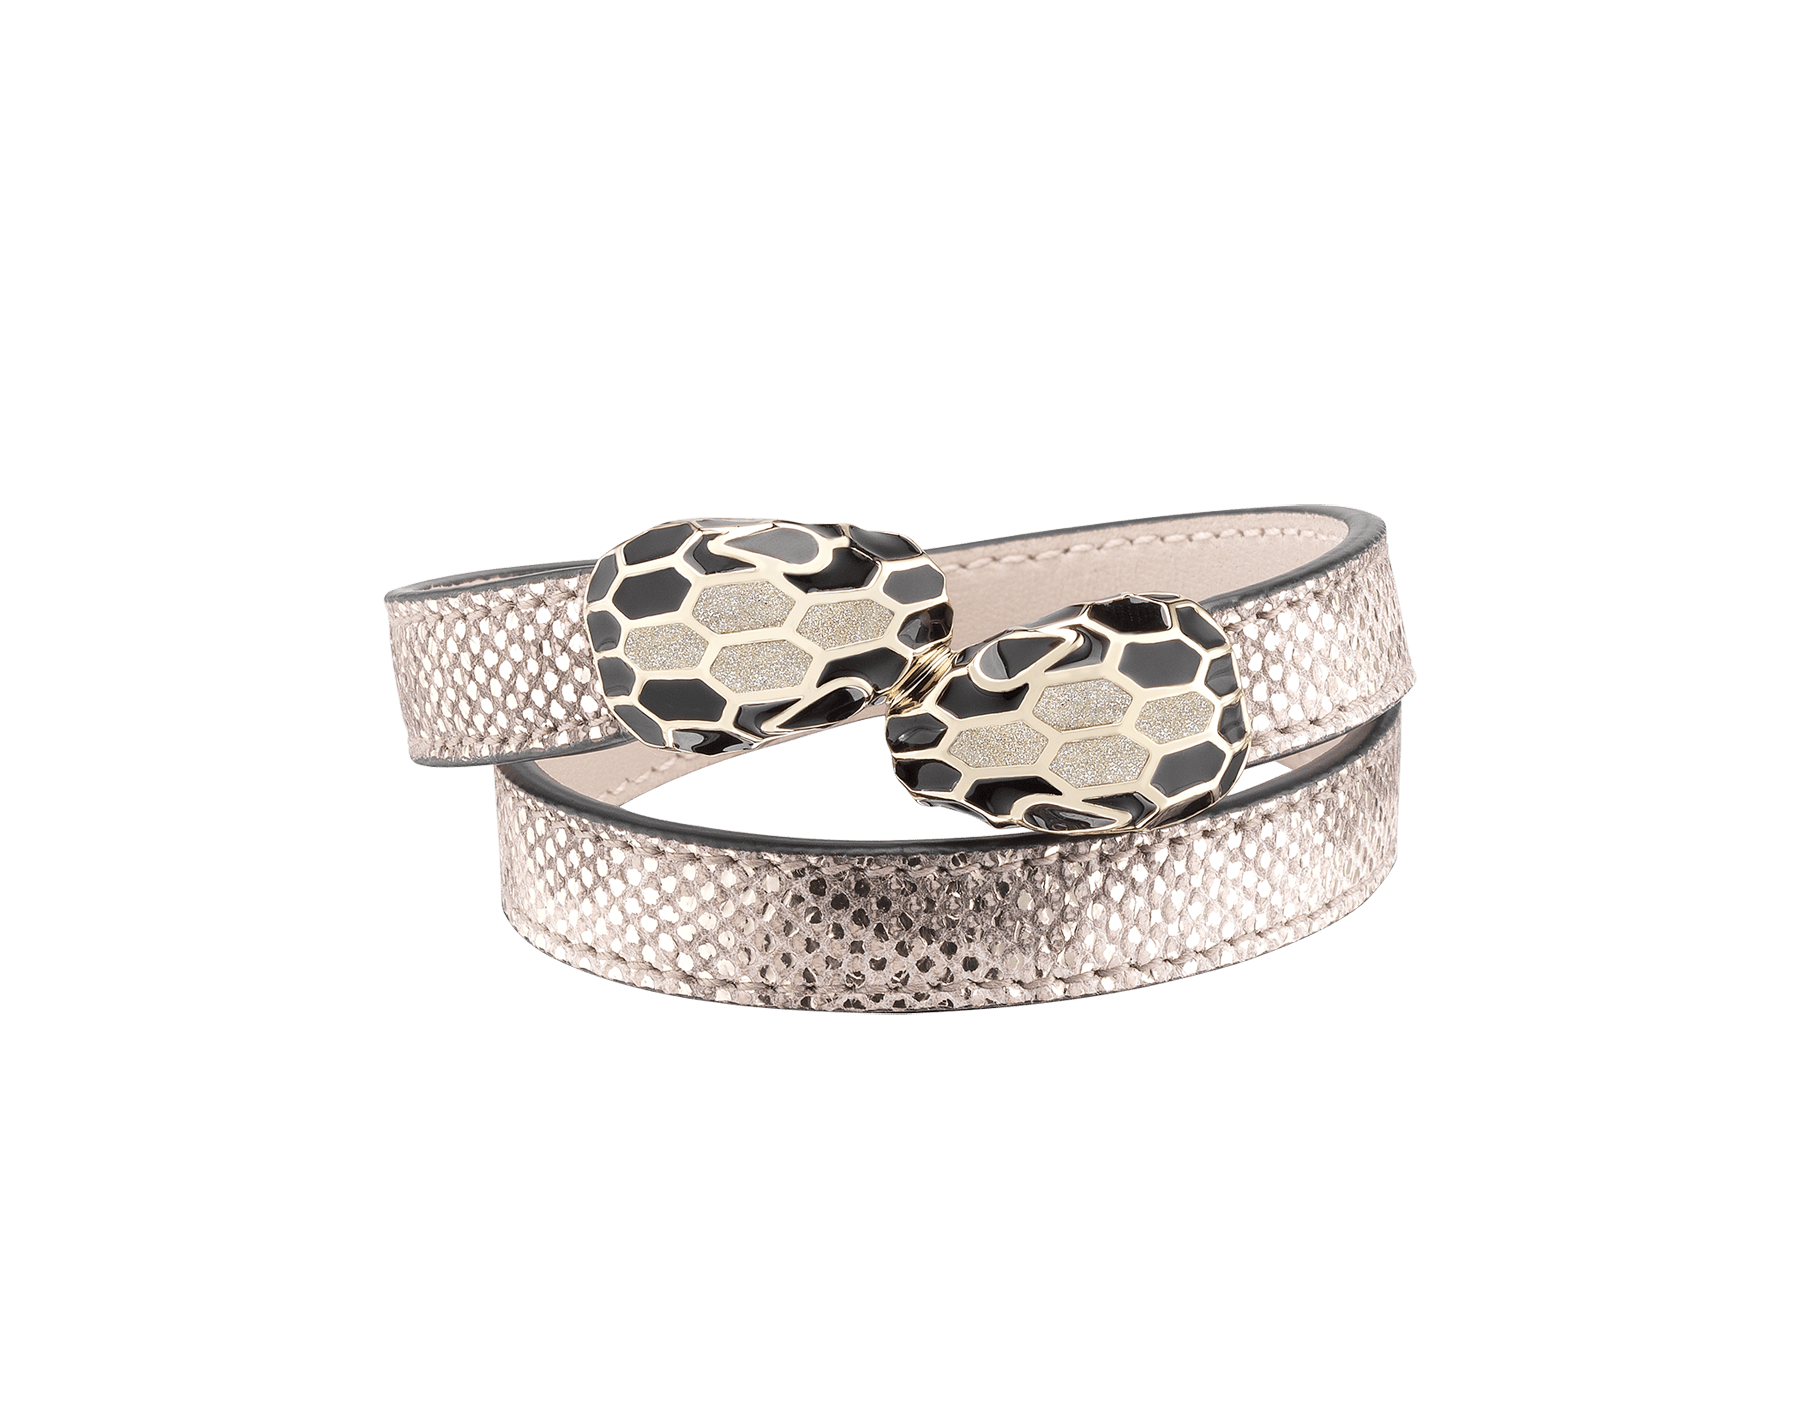 Serpenti Forever multi-coiled bracelet in milky opal metallic karung skin, with brass light gold plated hardware. Iconic contraire snakehead décor in black and glitter milky opal enamel, with black enamel eyes. MCSerp-MK-MO image 1